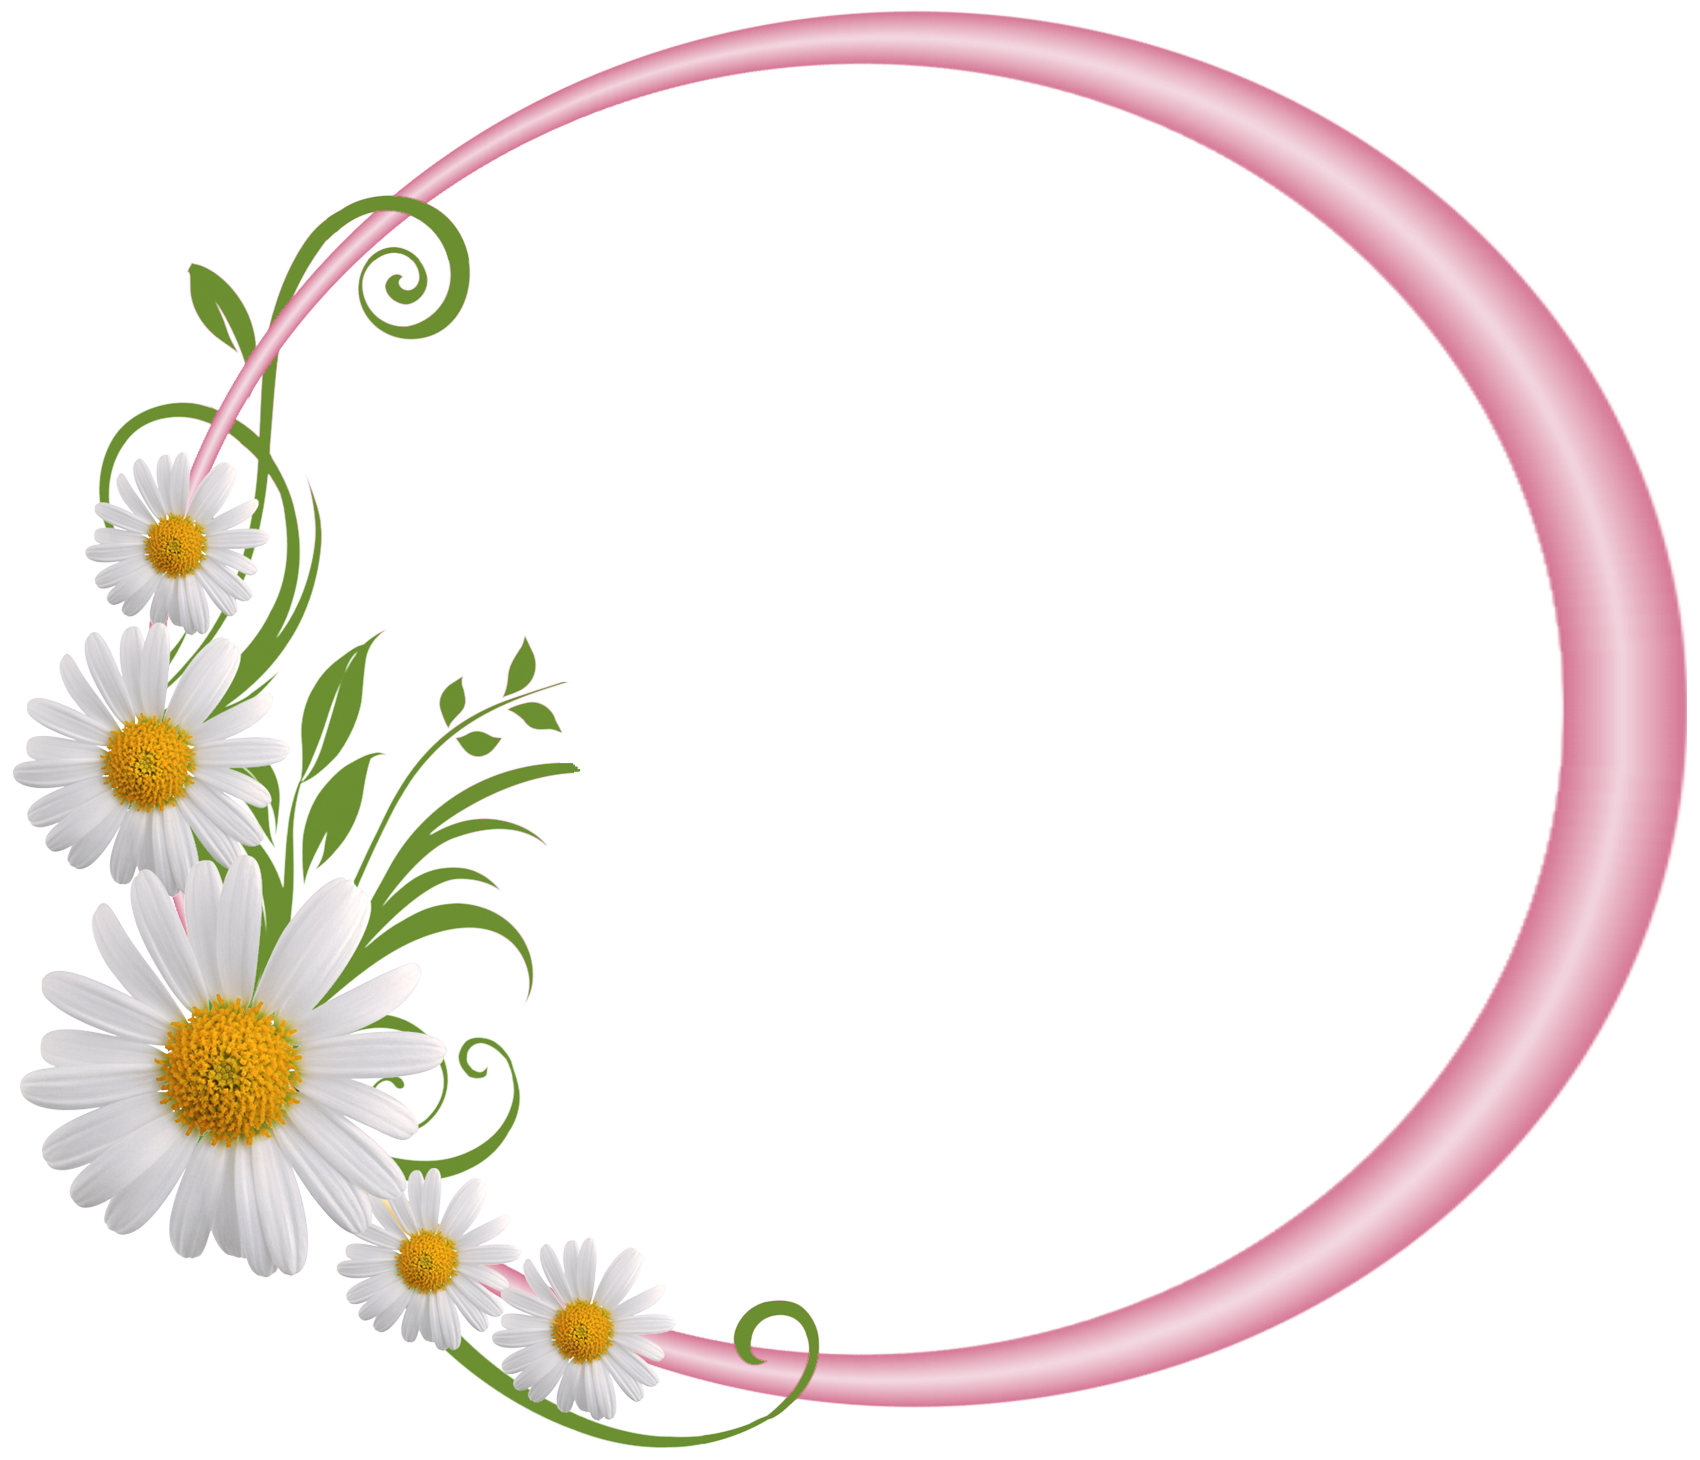 Daisy clipart frame. Pink round with daisies